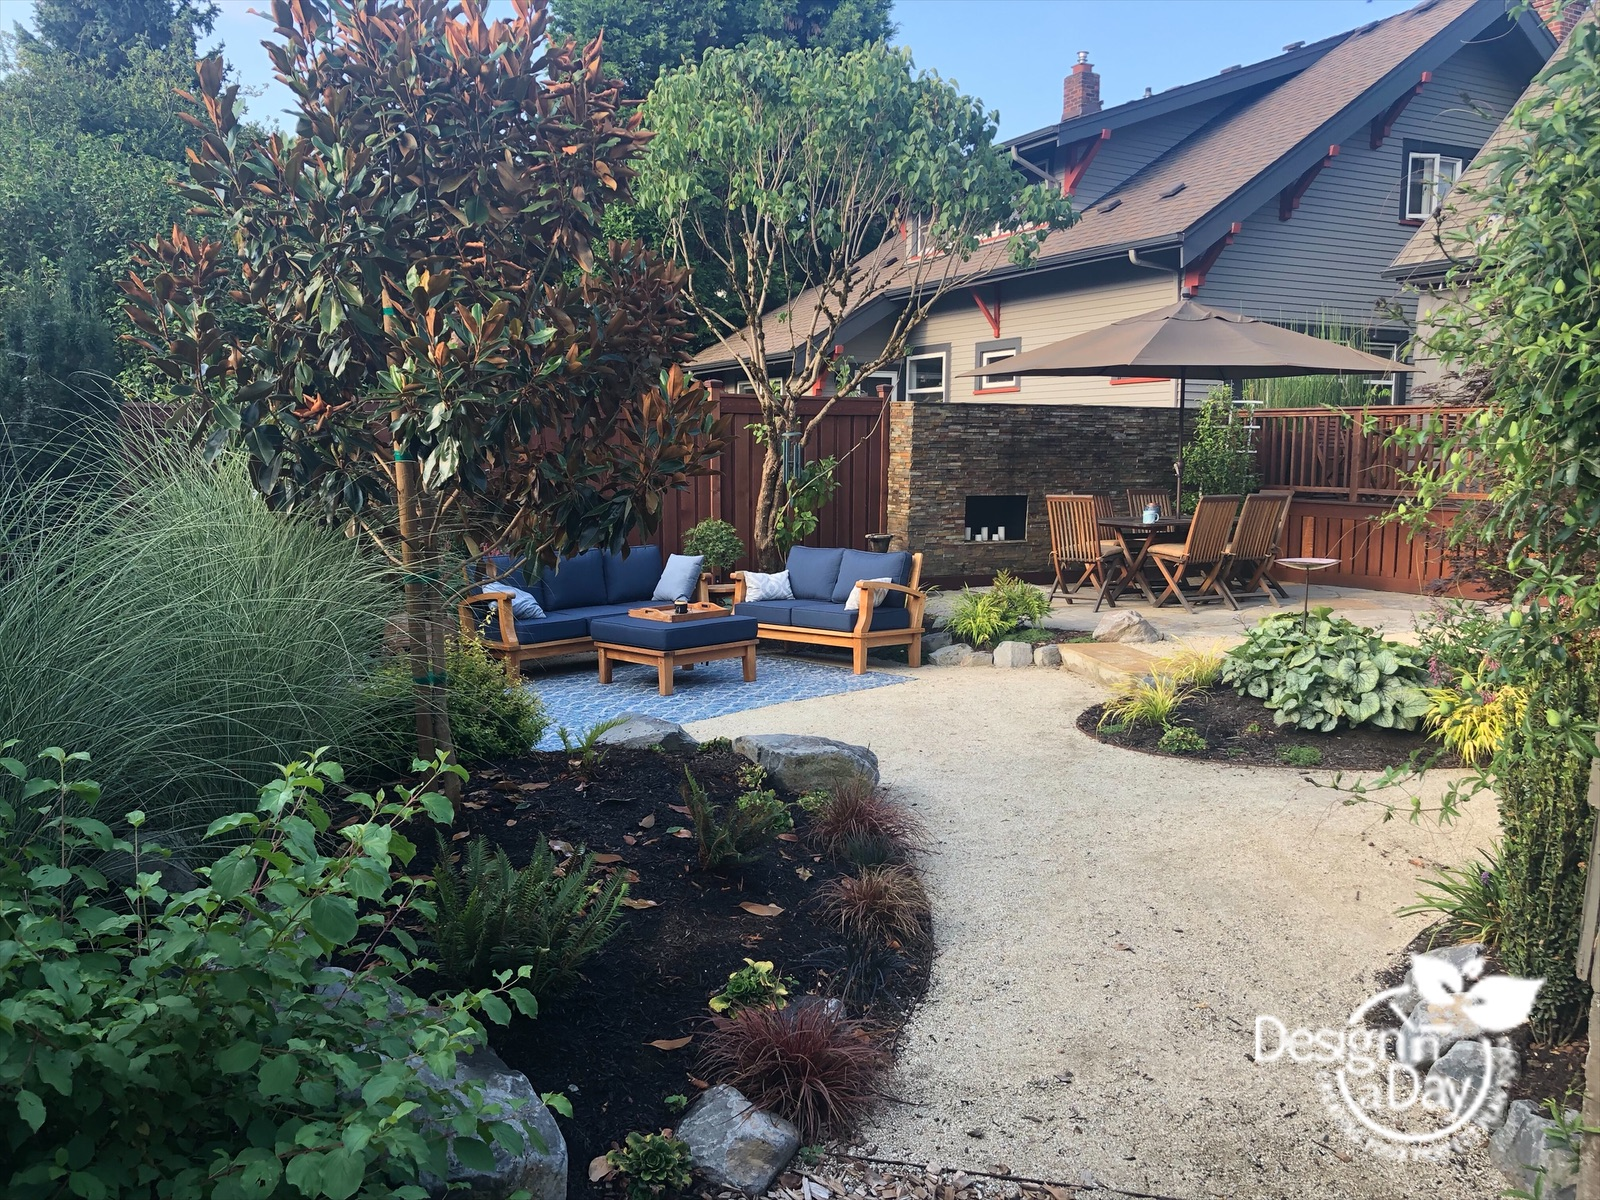 Private outdoor entertaining with multiple sitting areas is spacious for Grant Park lansdscape.